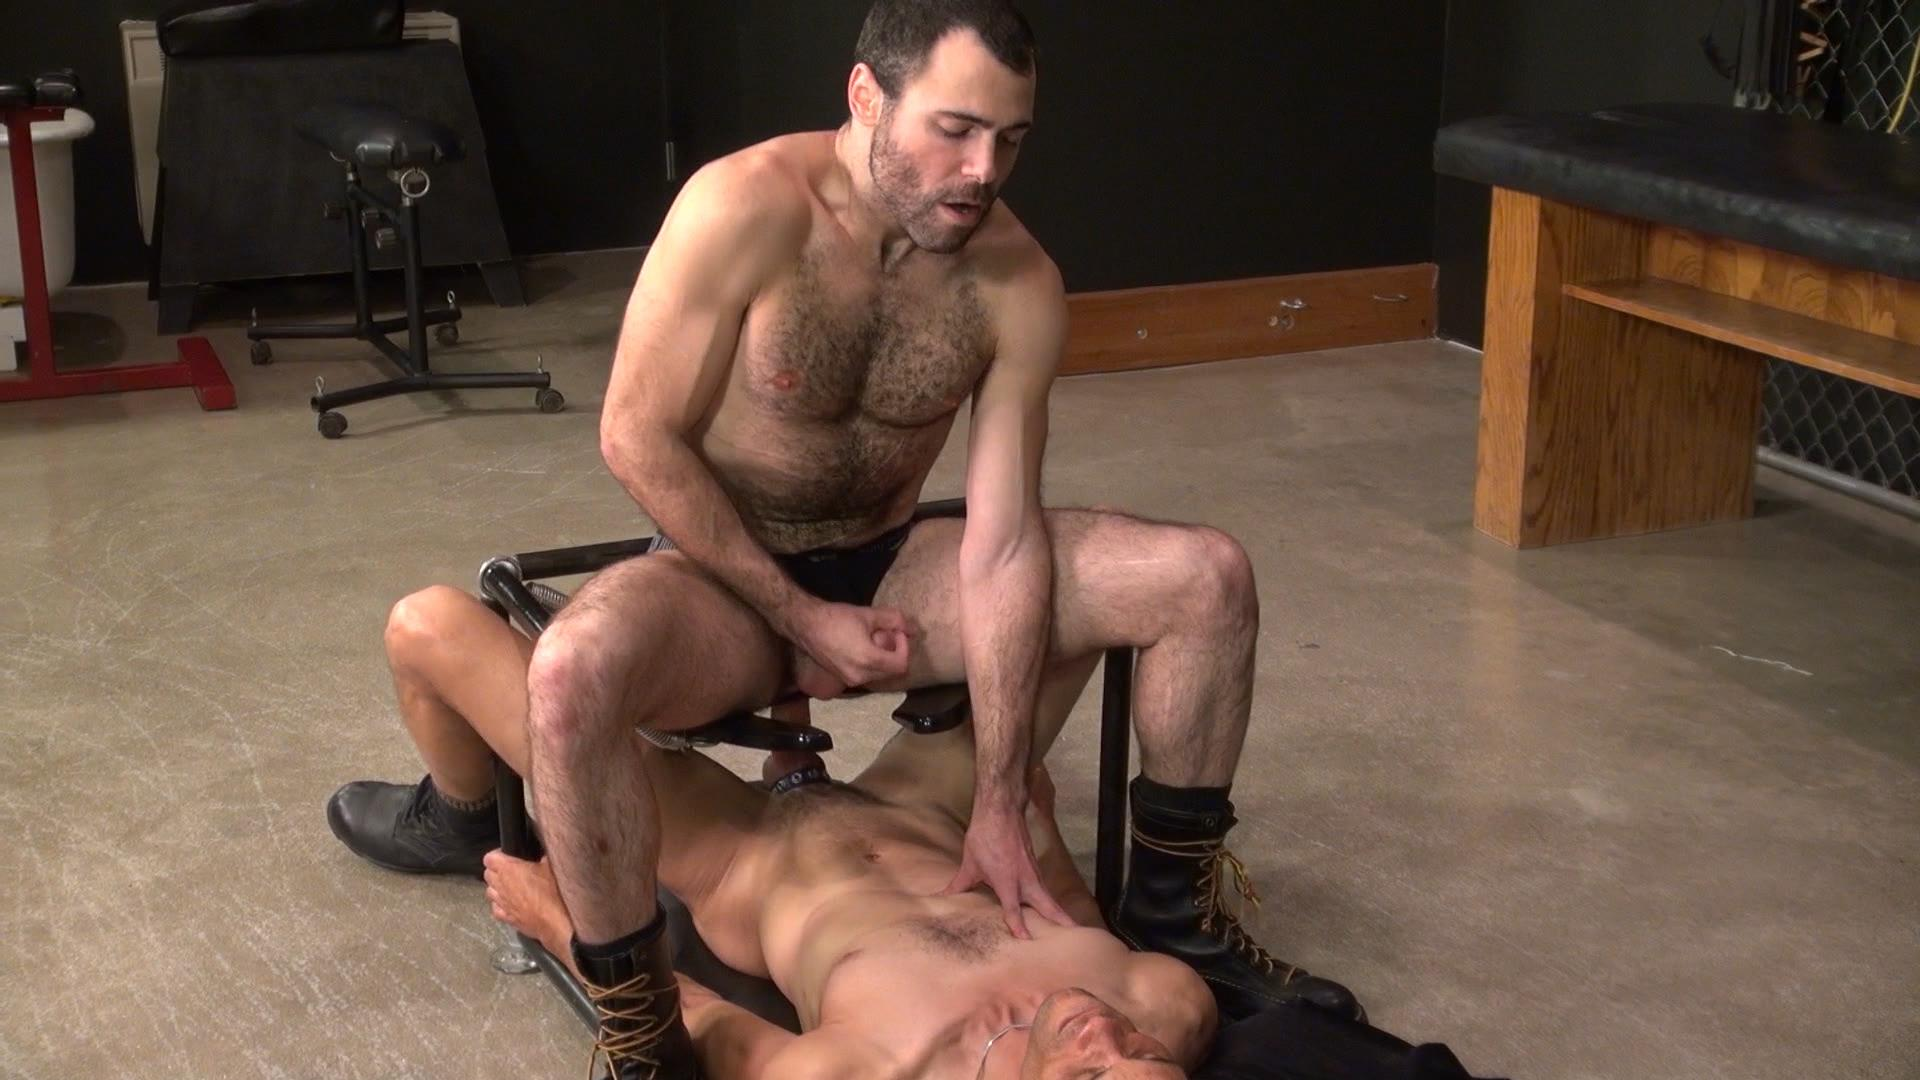 barebacking a hairy guy at a gay sex club | hairy cum